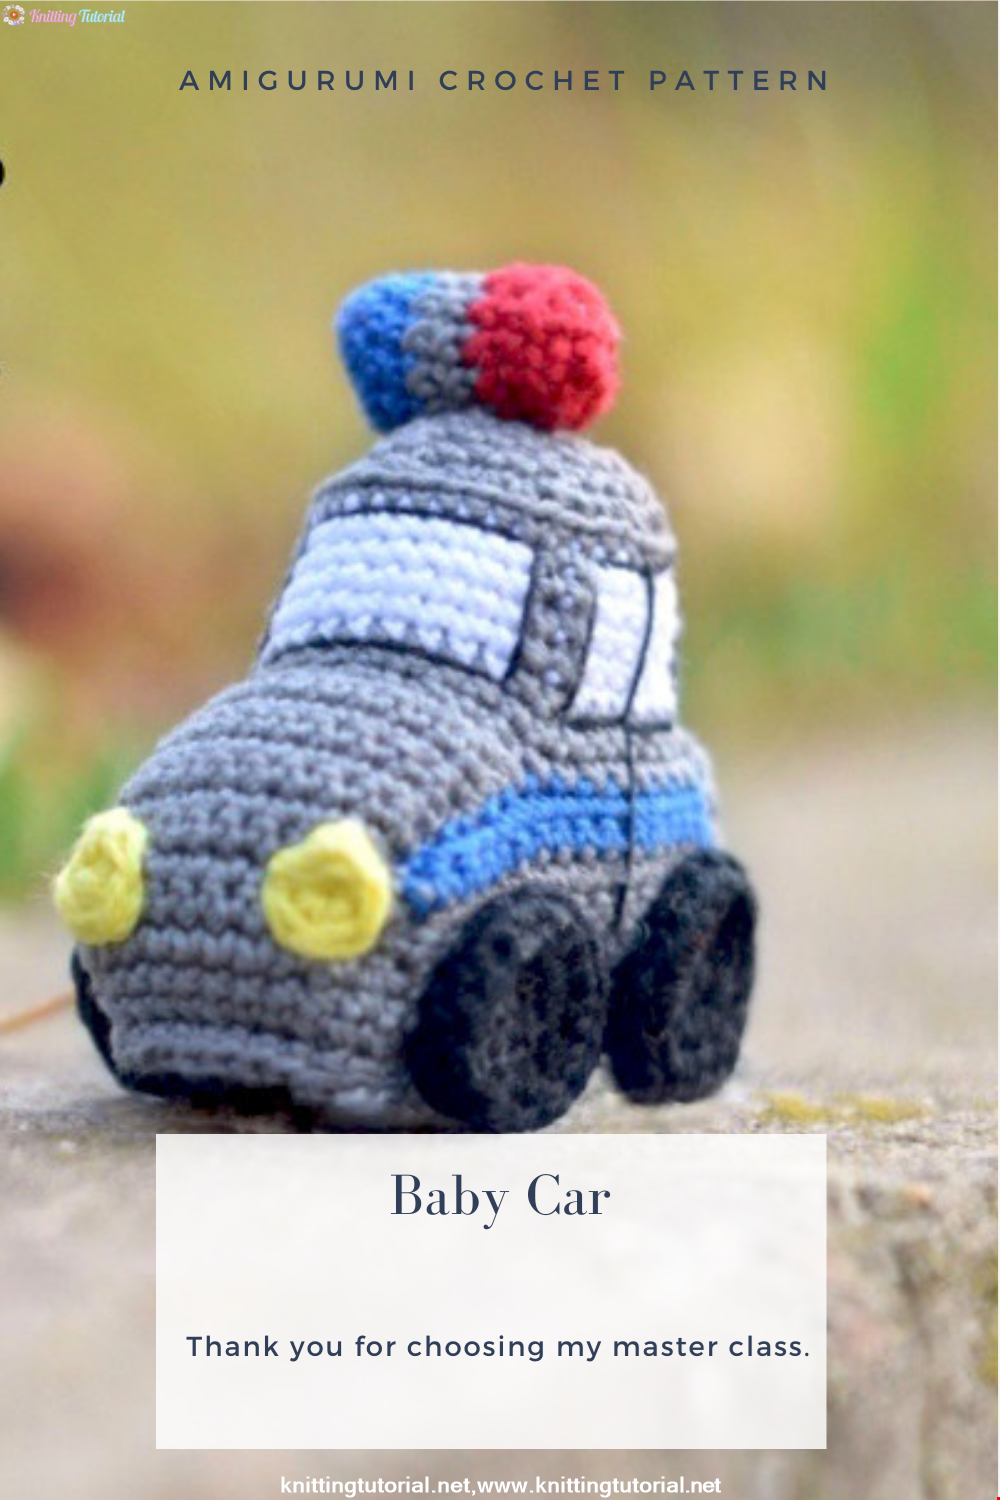 Amigurumi Baby Car Crochet Pattern